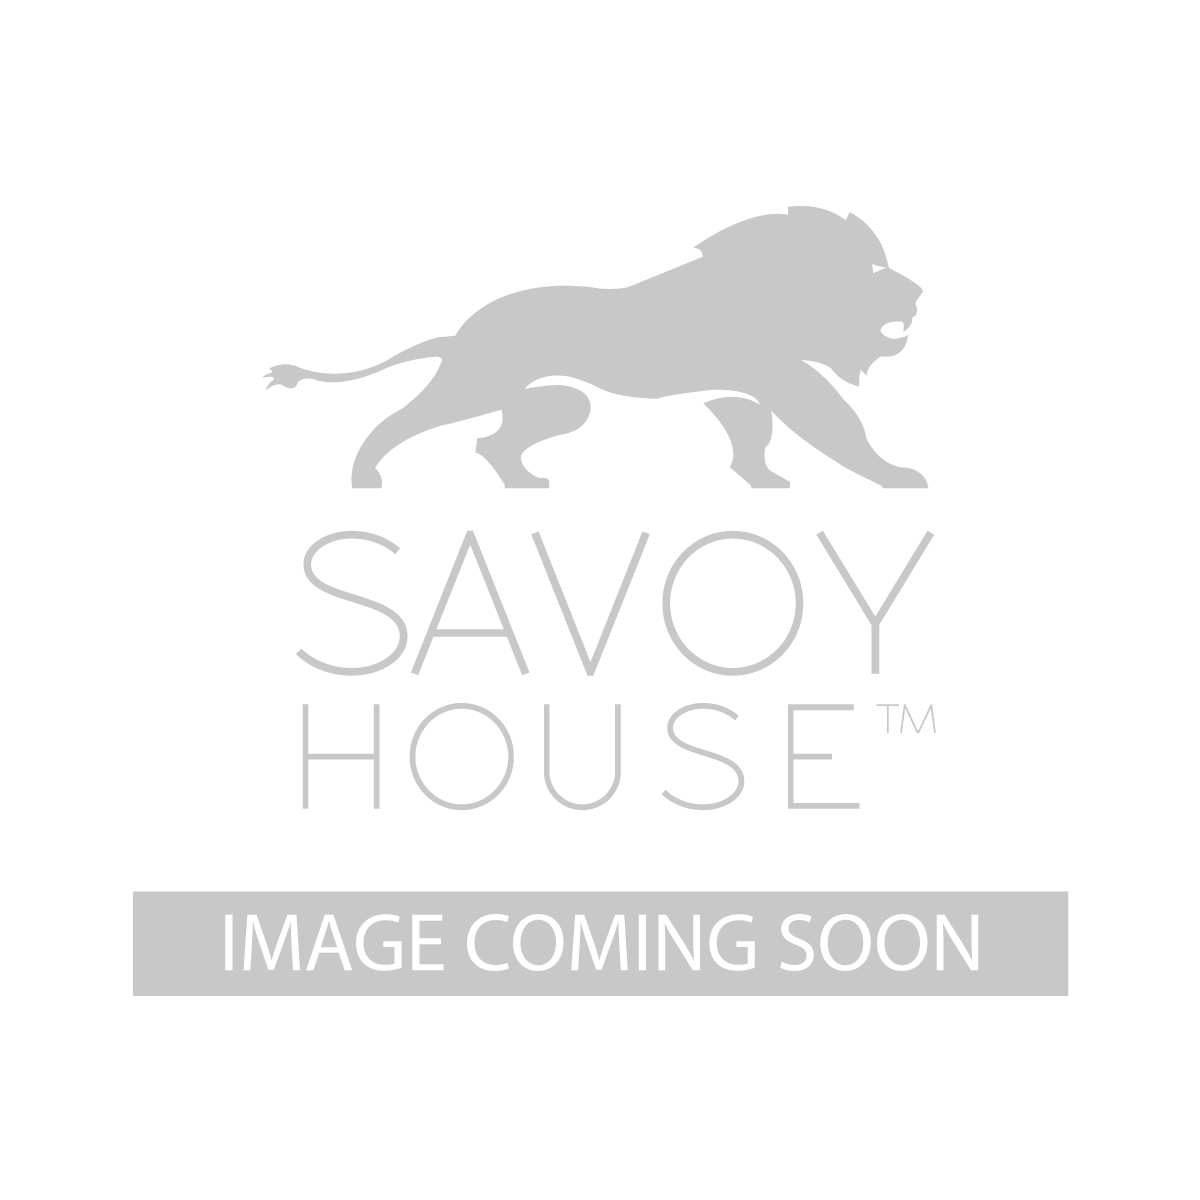 52 sgc 5rv sn the pine harbor ceiling fan by savoy house the pine harbor ceiling fan aloadofball Choice Image